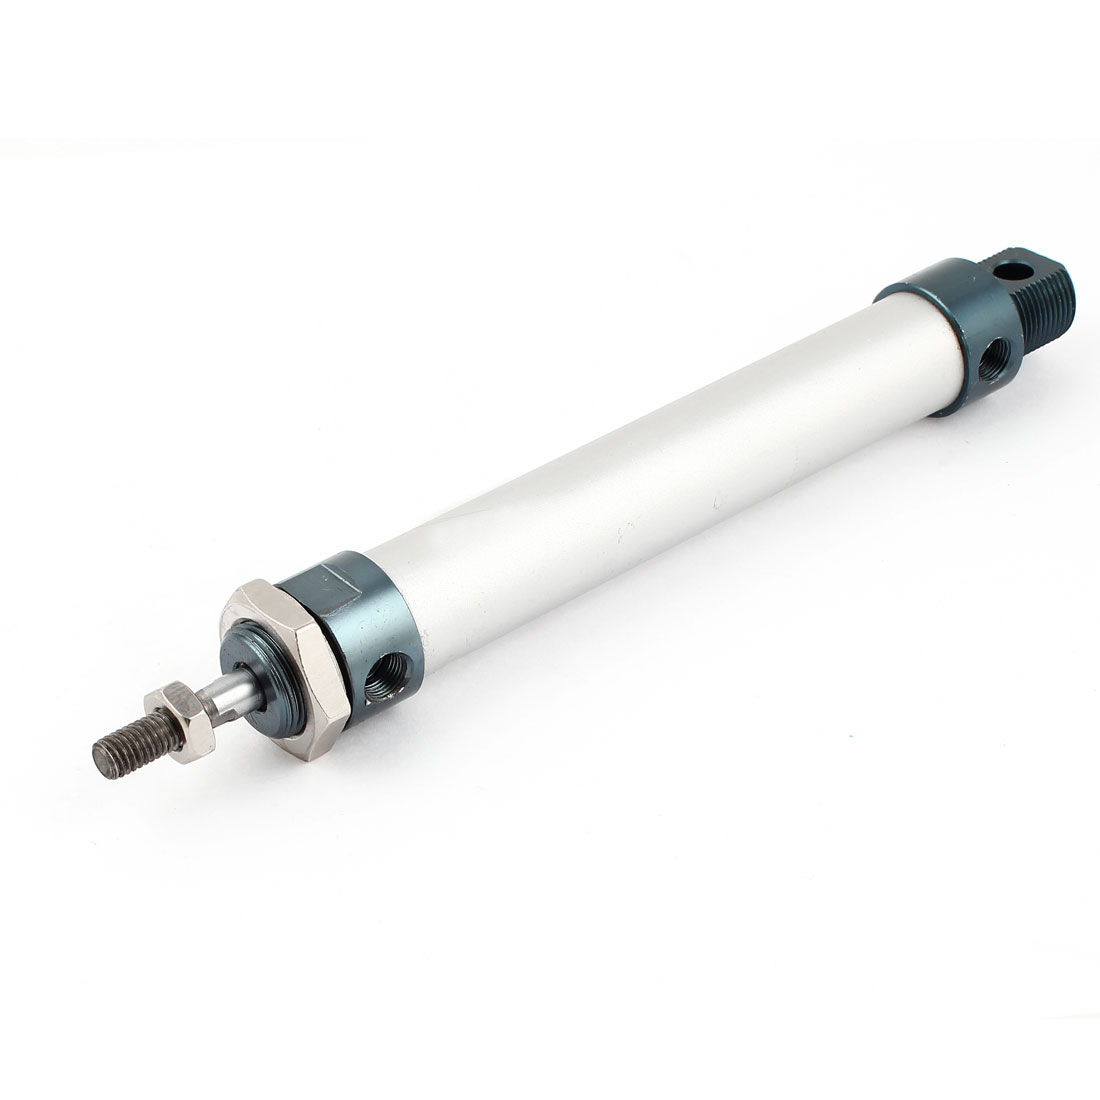 20mm Bore 100mm Stroke Dual Action Single Rod Pneumatic Air Cylinder